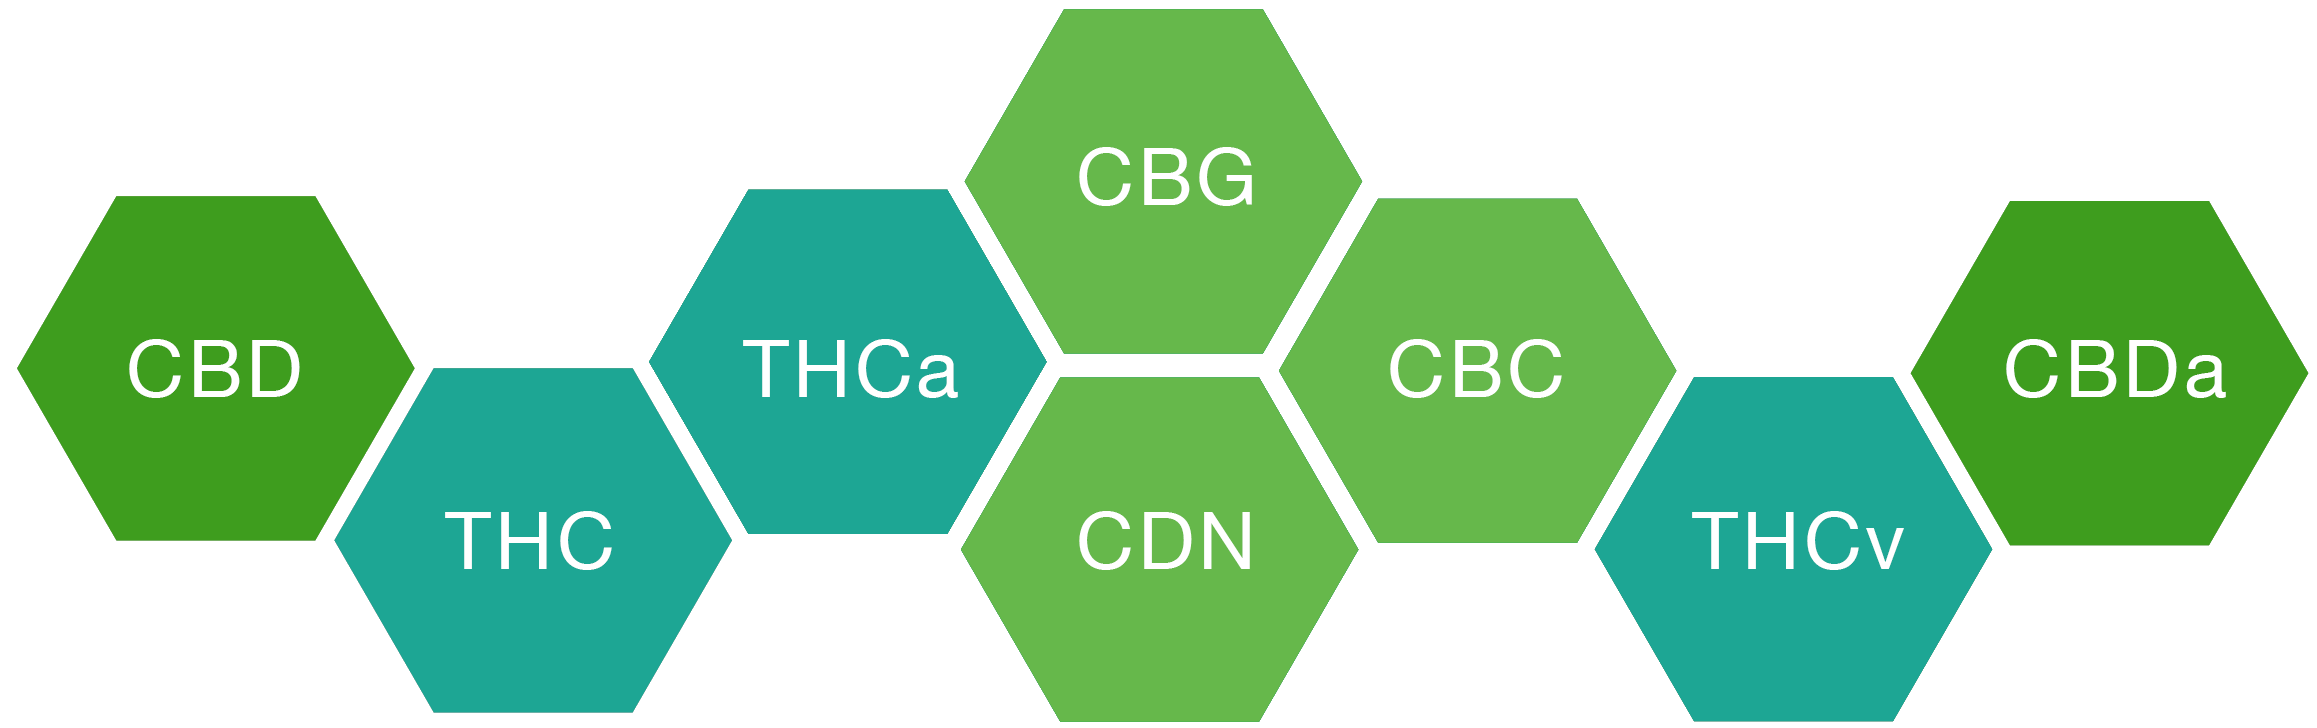 cbd full spectrum diagram